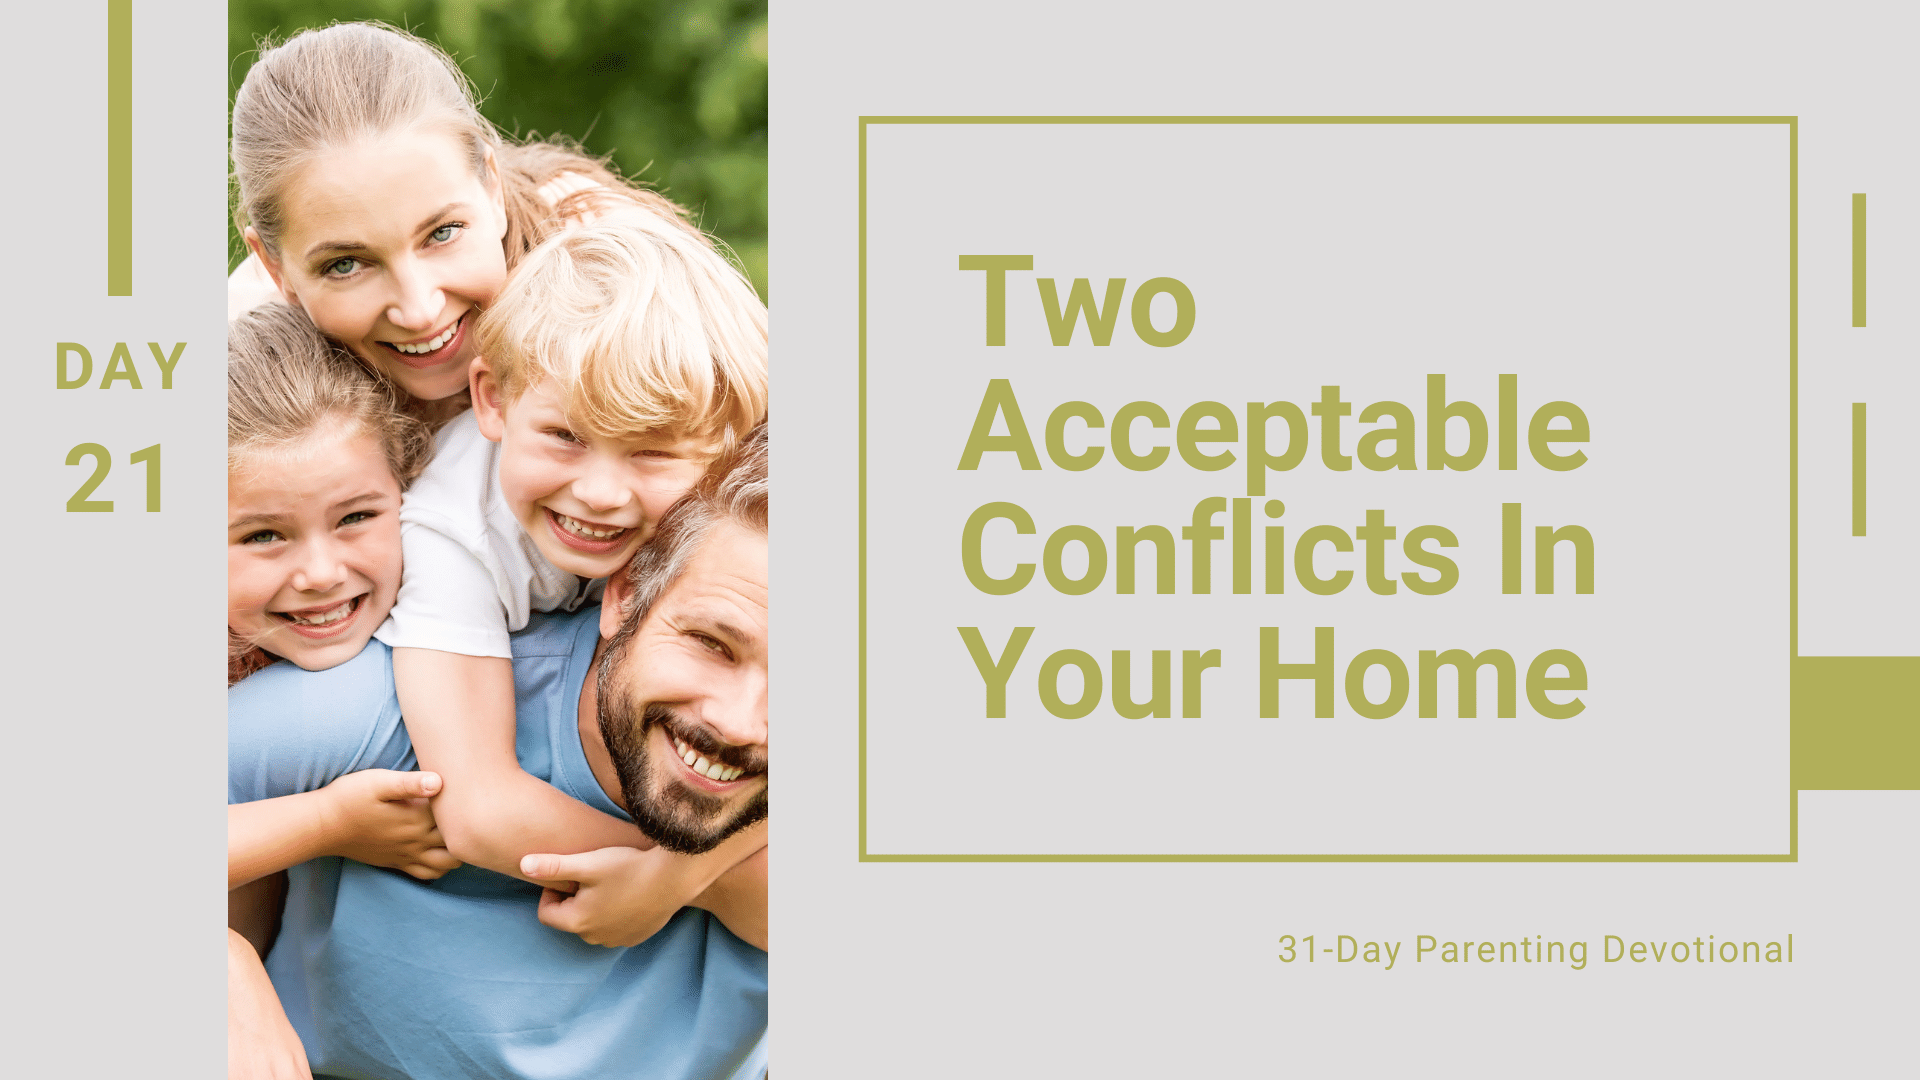 21 Two Acceptable Conflicts In Your Home, Day 21